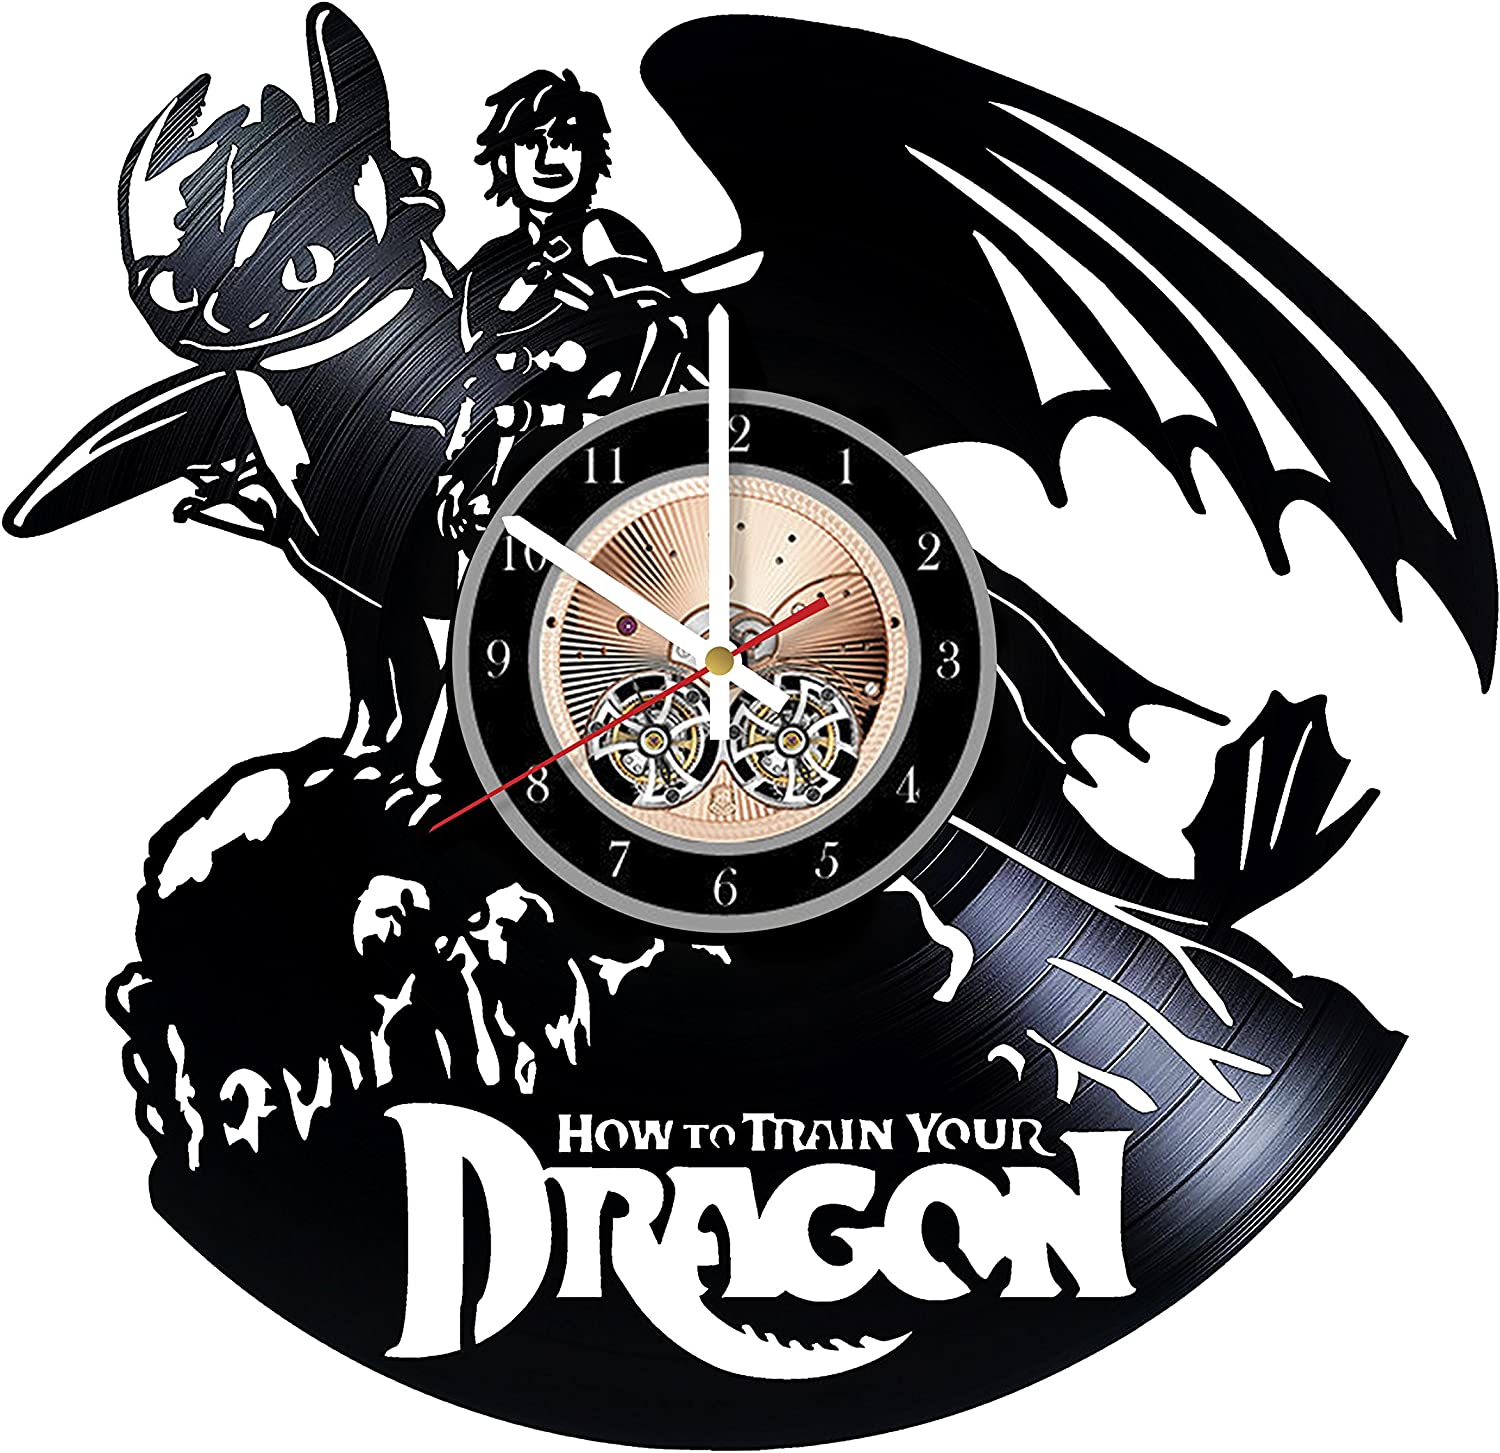 Wood Workshop How to Train Your Dragon Vinyl Record Wall Clock - Get Unique Bedroom or Living Room Wall Decor - Gift Ideas for him and her